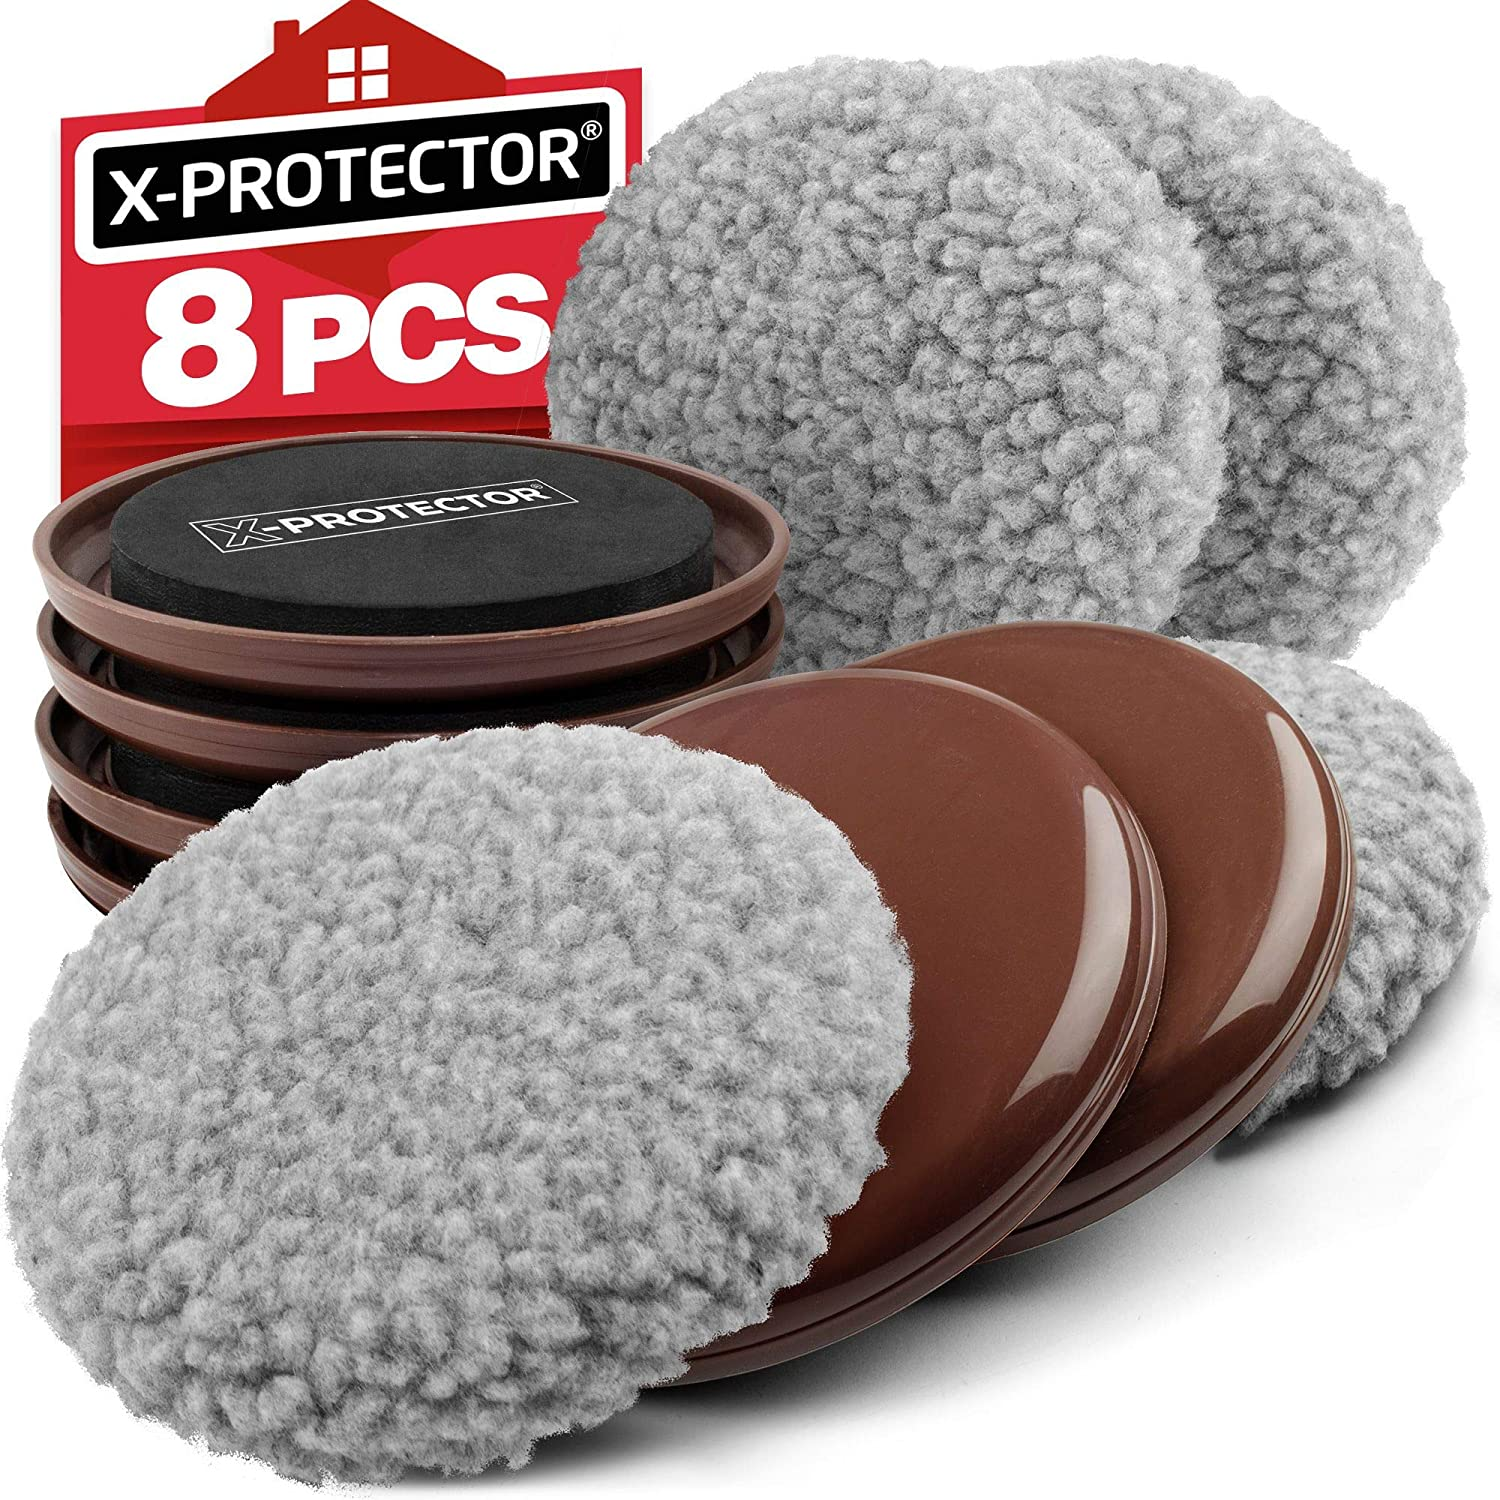 "Furniture Sliders X-PROTECTOR - Multi-Surface Sliders for Carpet - Furniture Movers Hardwood Floors - Best 4-Pack 5"" Heavy Moving Pads and 4 Hardwood Socks - Move Your Furniture Easy ON Any Surface!"